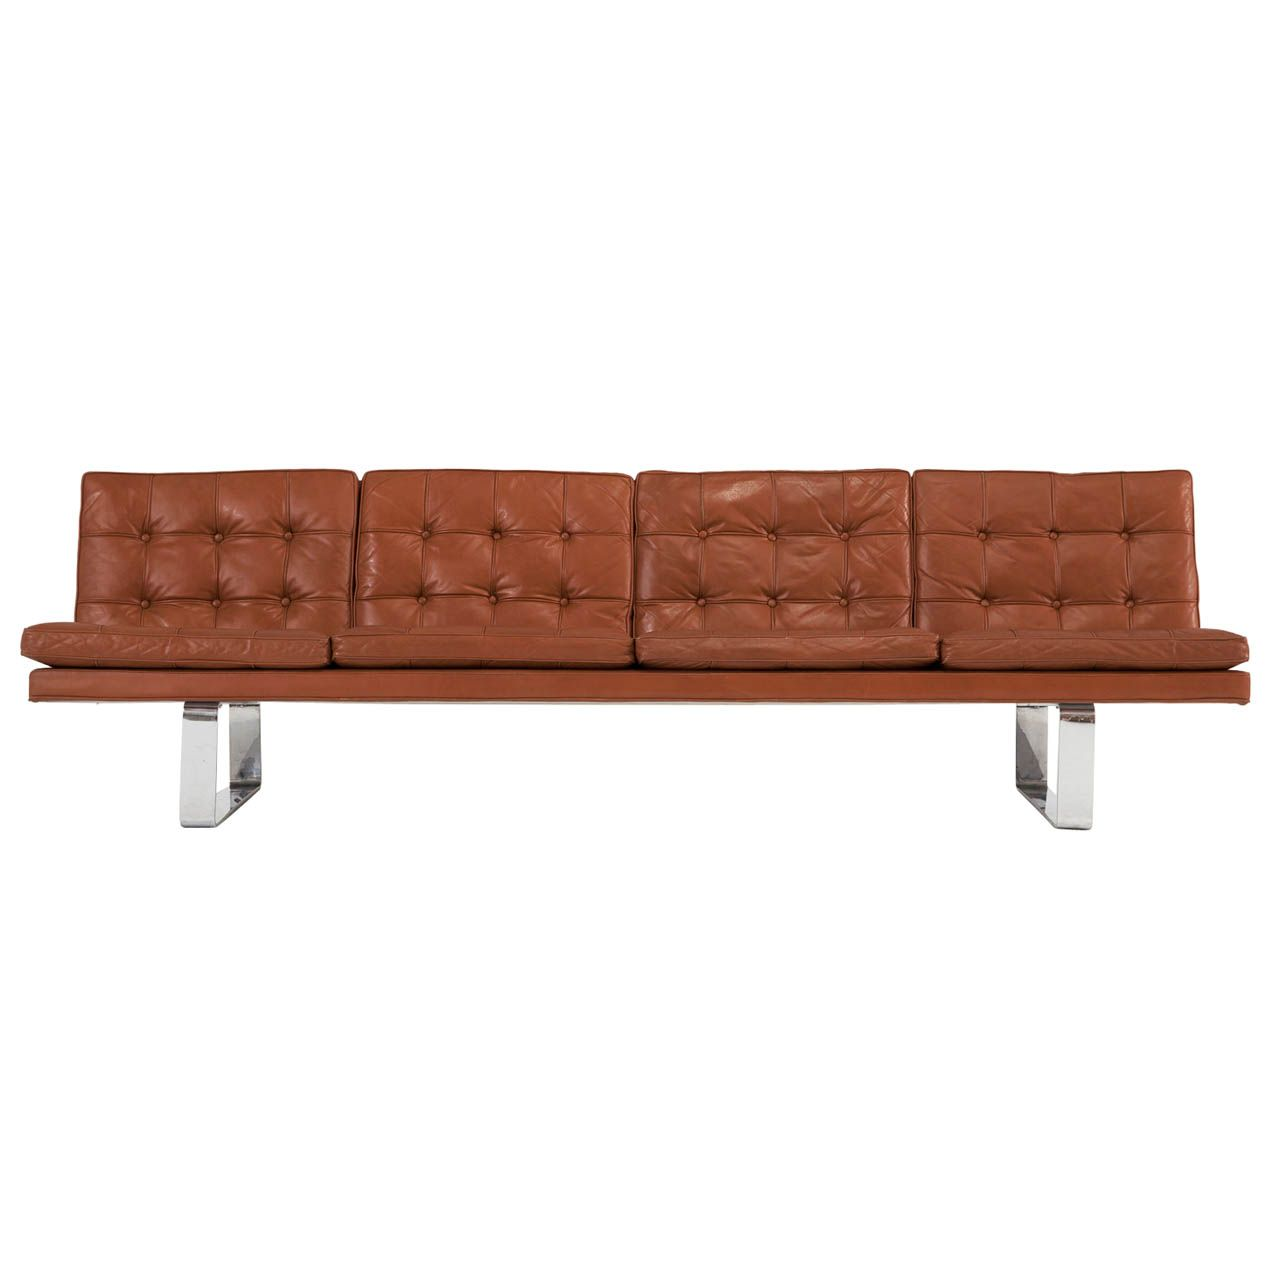 Pin By Obsessilicious On Couched Modern Retro Furniture Vintage Sofa Retro Furniture